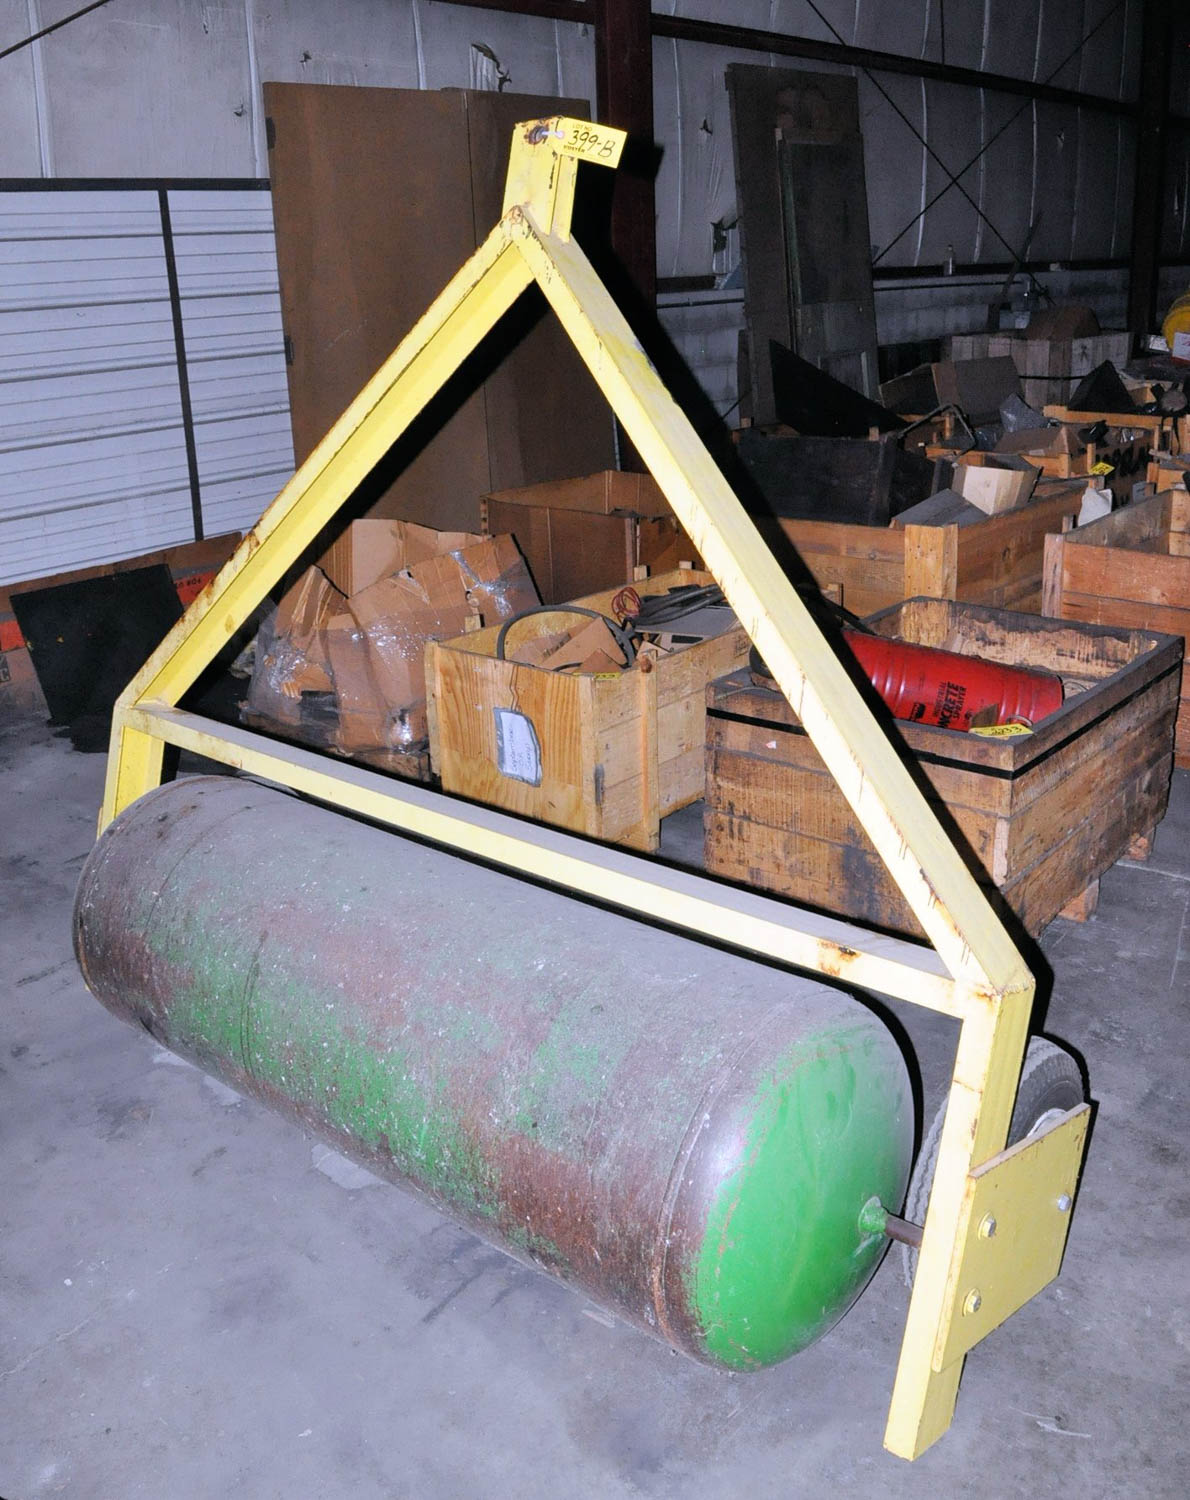 "Lot 399b - PULL BEHIND LAWN ROLLER, 20"" DIAMETER X 60"" LONG ROLLER, (OUTBUILDING-TIFFIN)"